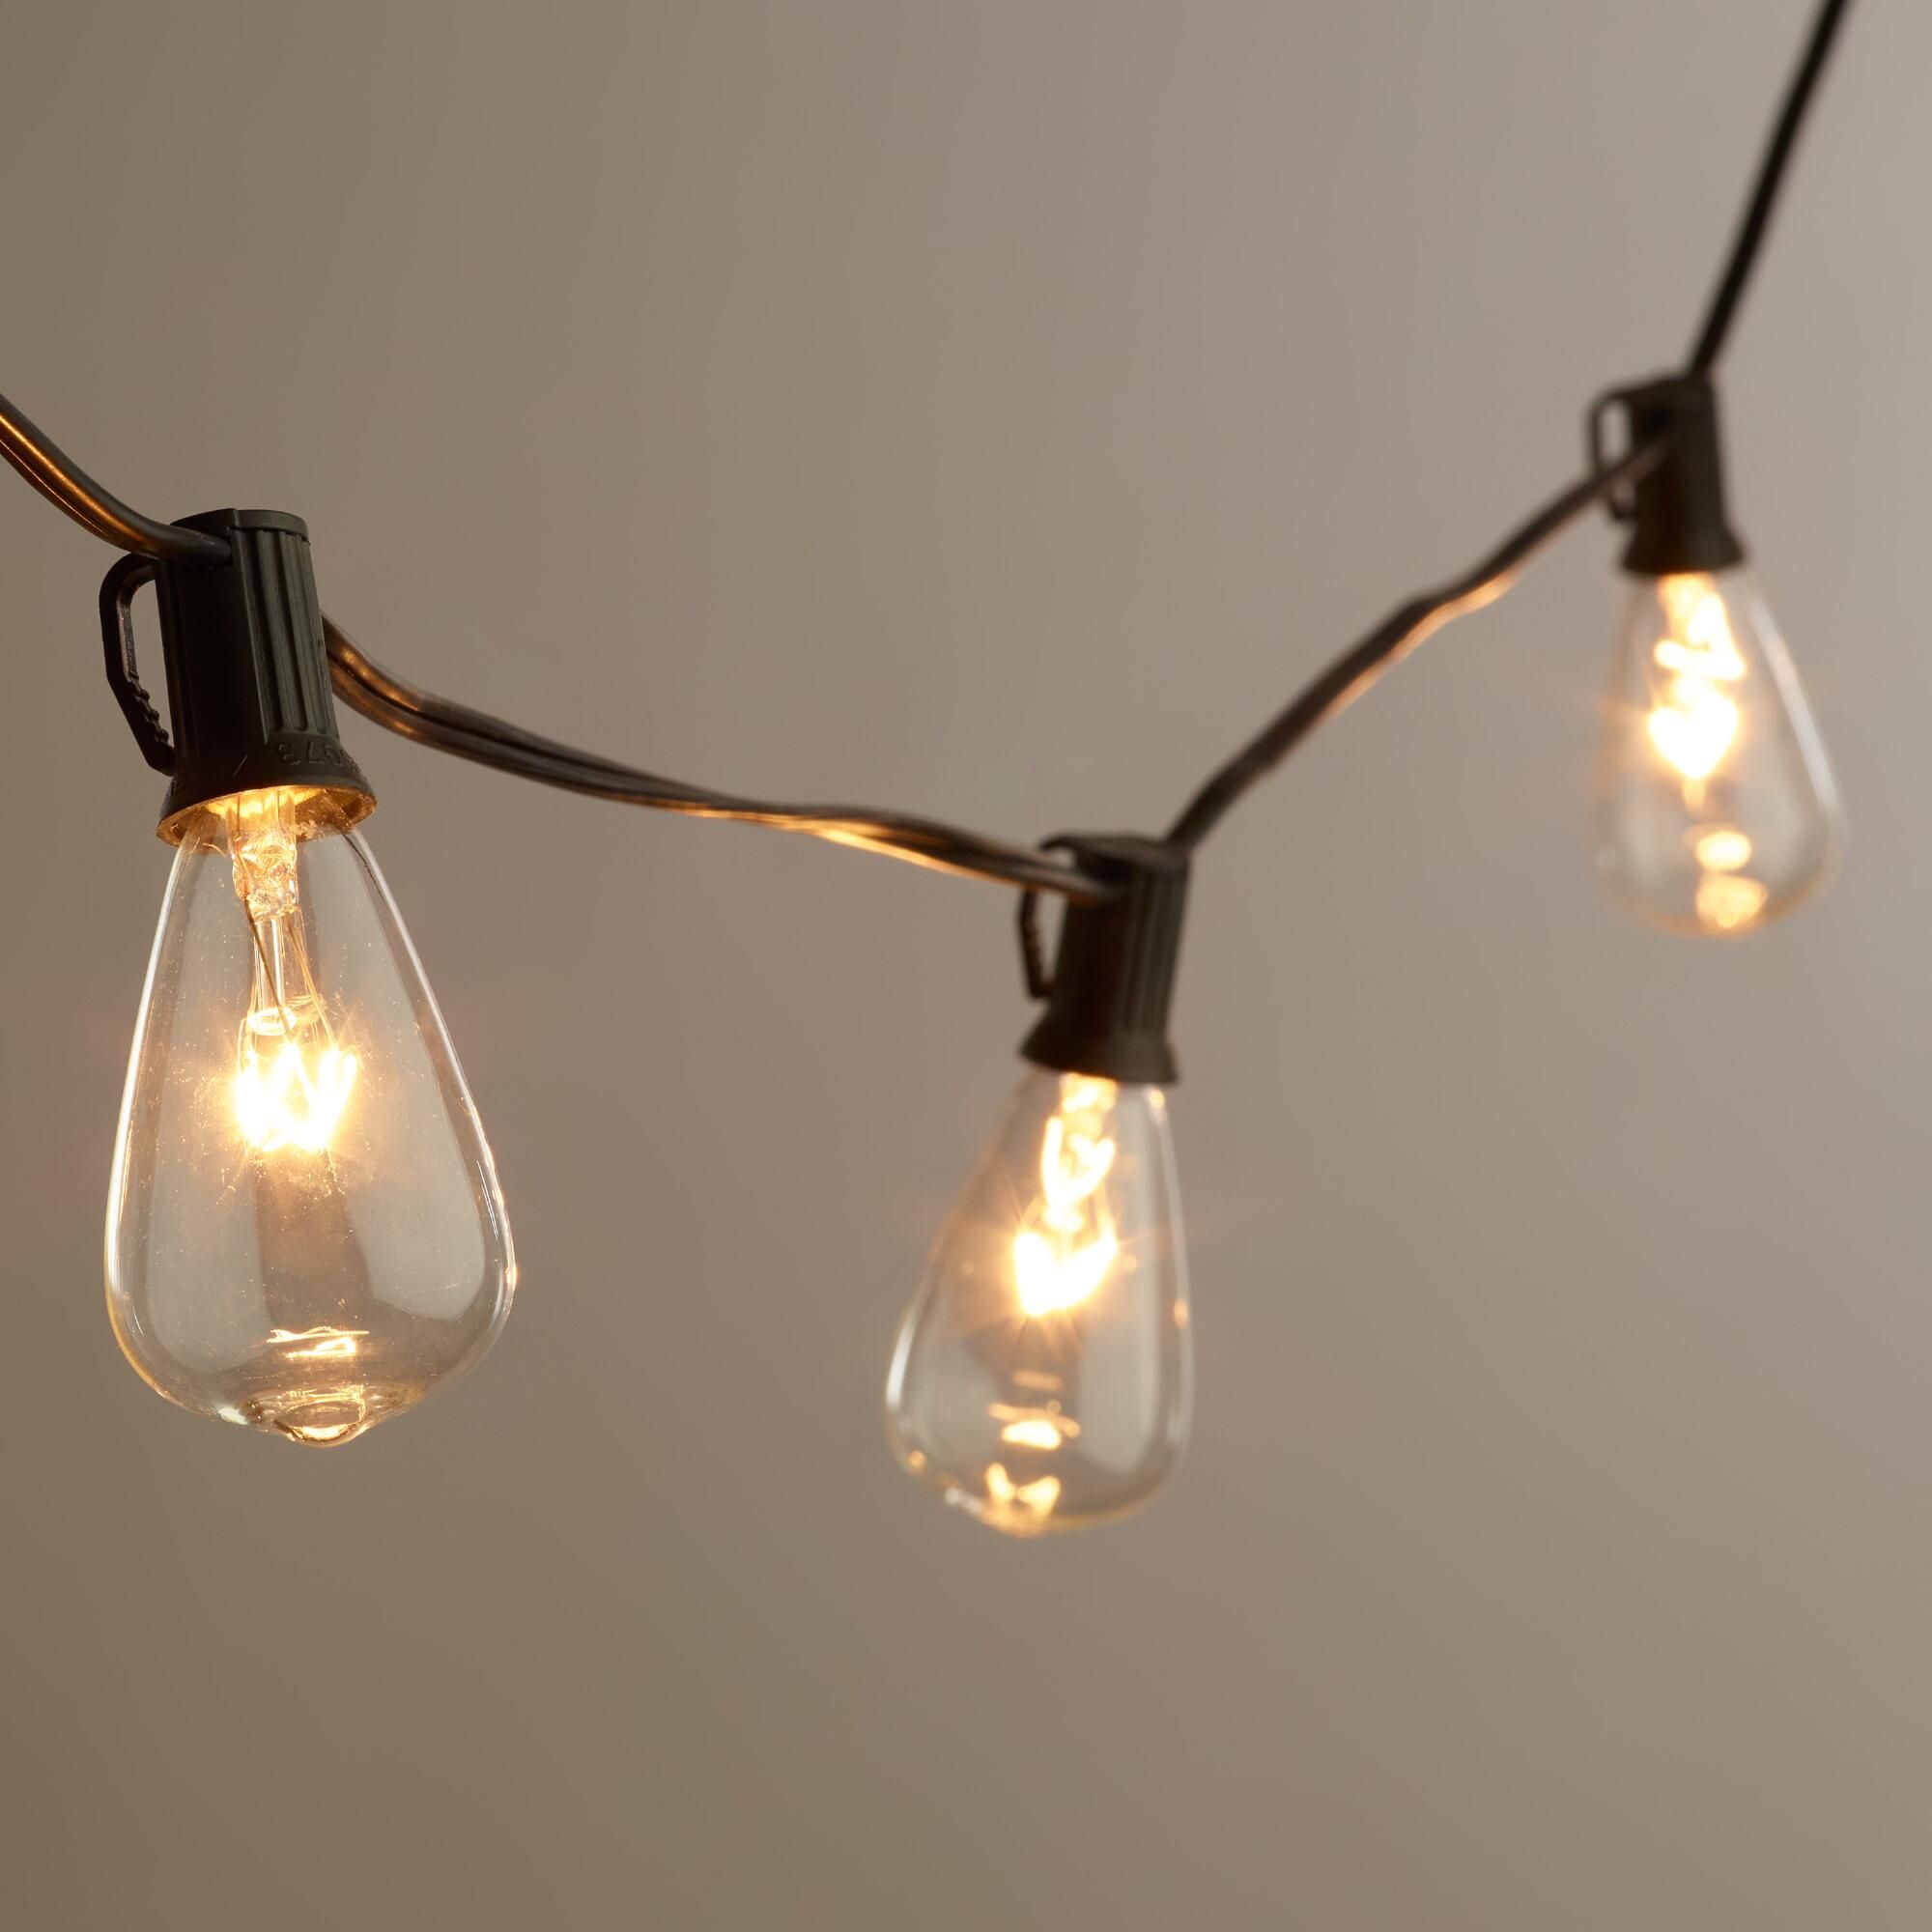 Light Bulbs On A String Pleasing Inspiredthe Vintage Light Bulbs Inventedthomas Edison Our Inspiration